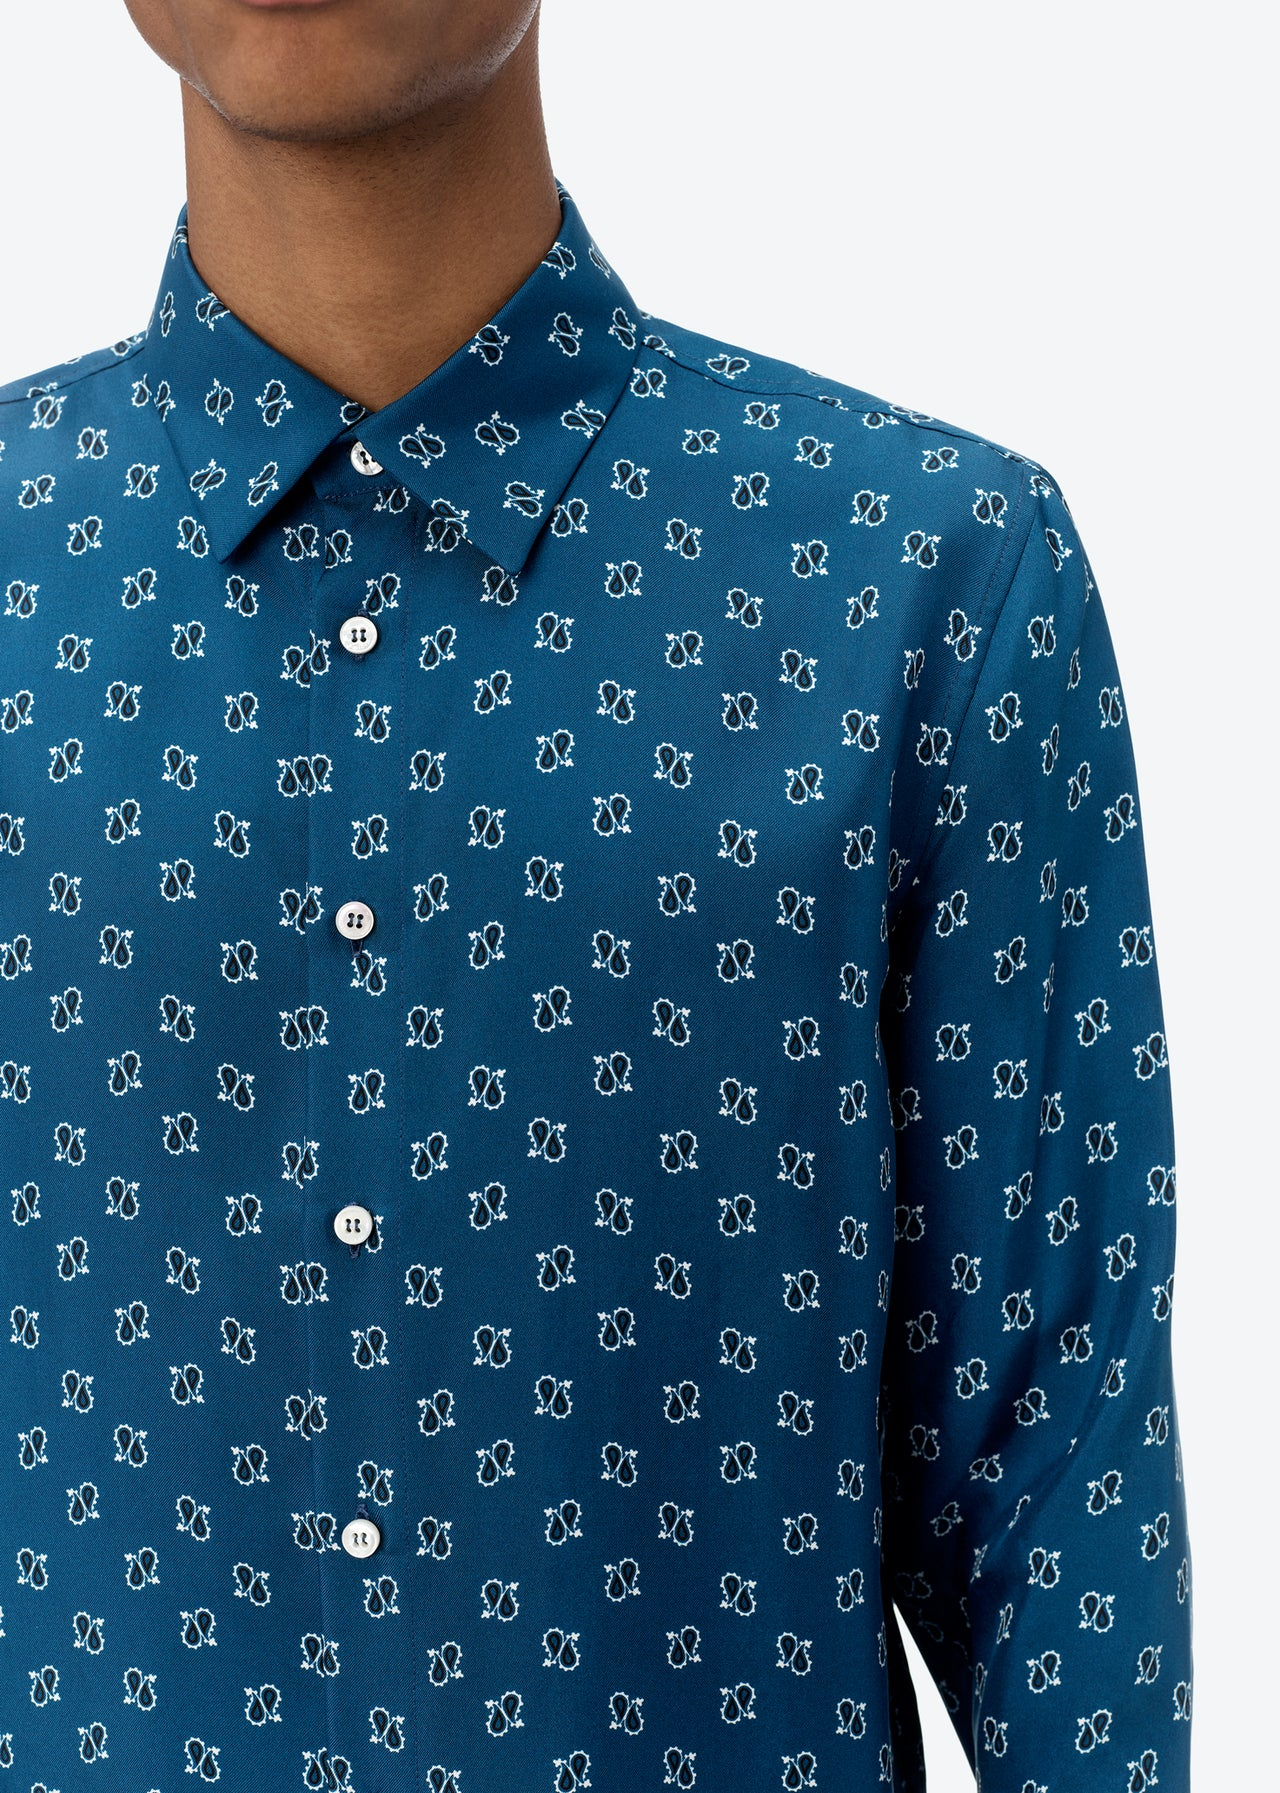 MICRO PAISLEY LONG SLEEVE SHIRT - NAVY